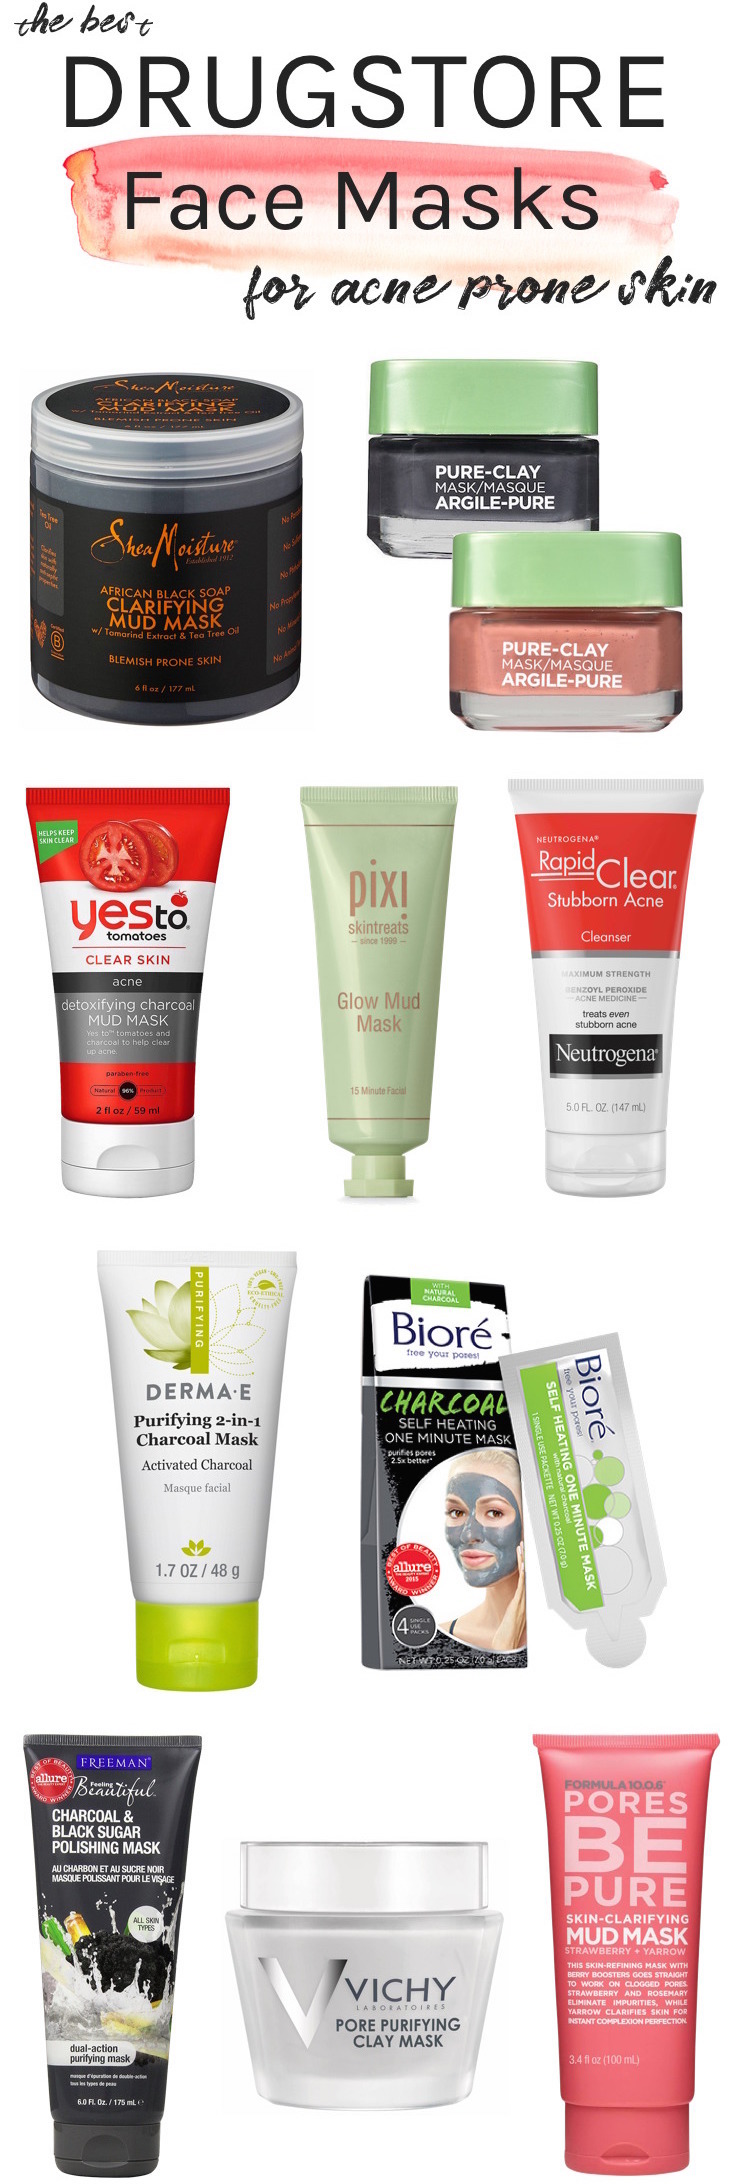 Whether you're battling breakouts, clogged pores or dullness, here are the best drugstore face masks for acne prone skin that can help you get clear skin without costing a pretty penny!